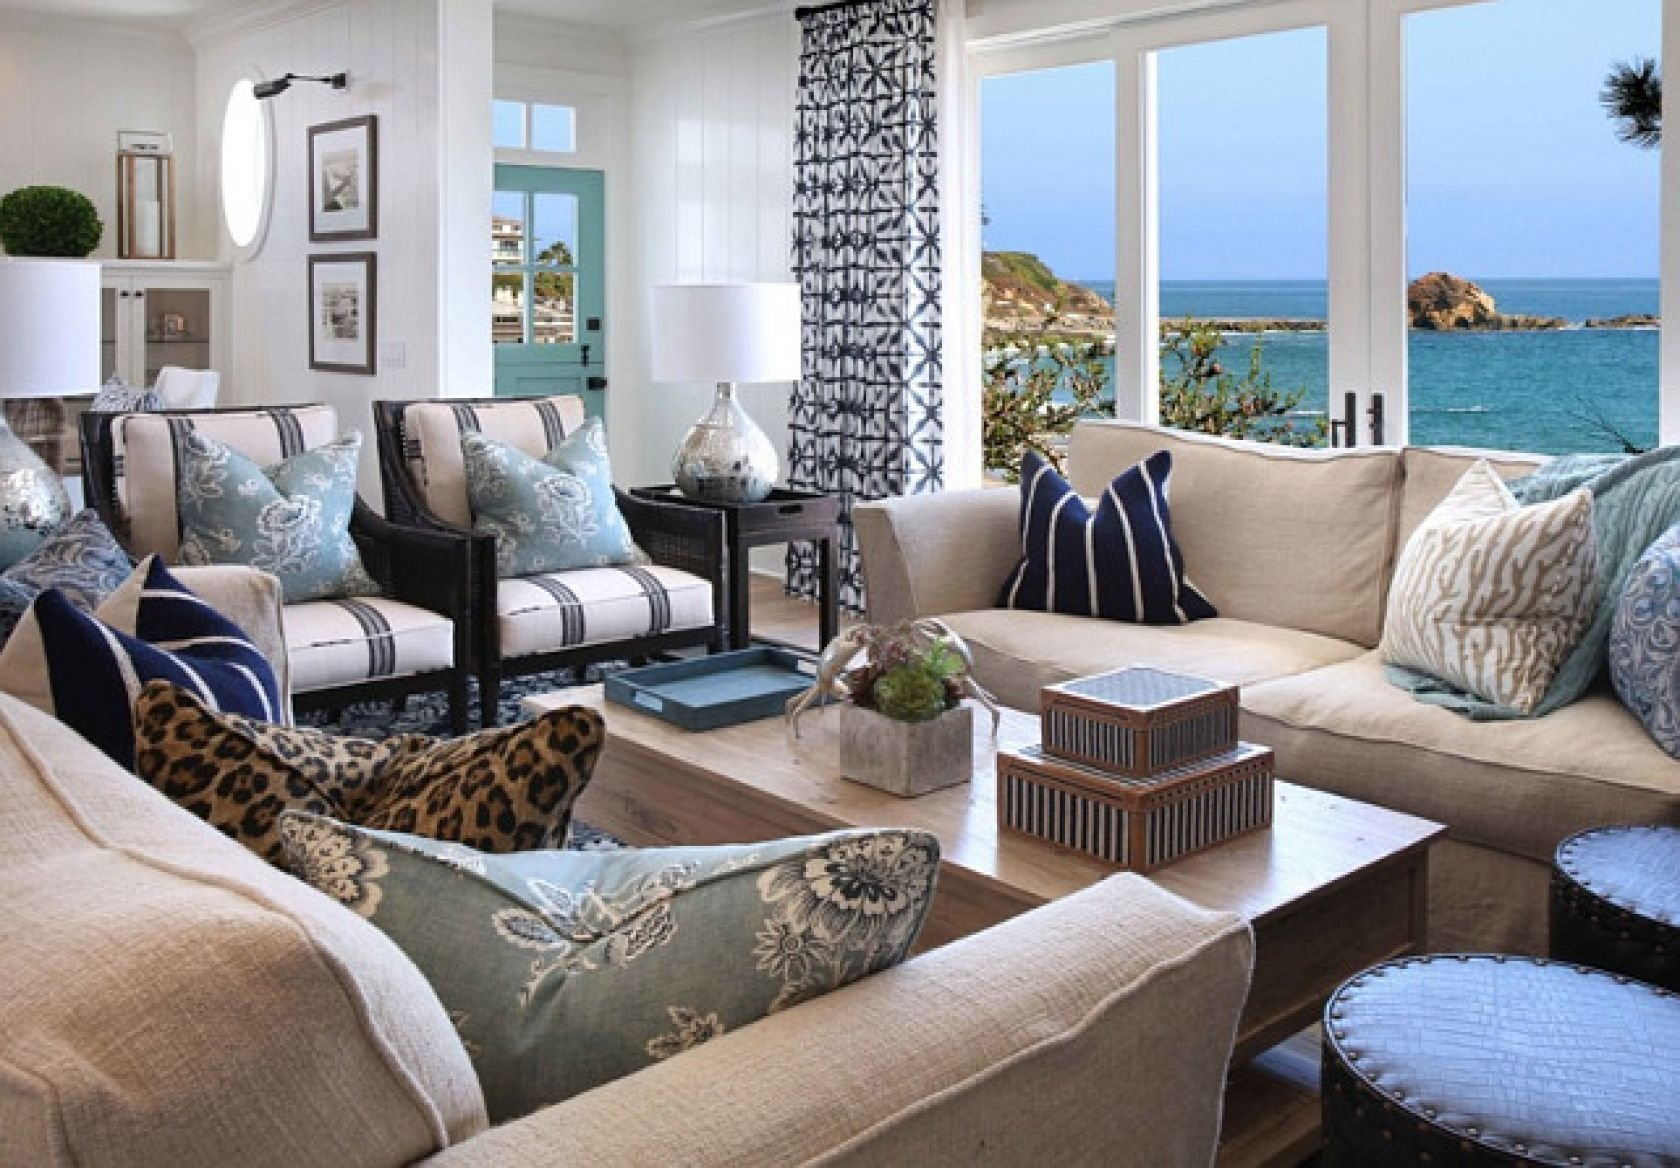 10 Fashionable Beach Themed Living Room Ideas beachy living room living room beach nurani org beachy ridit co 2021